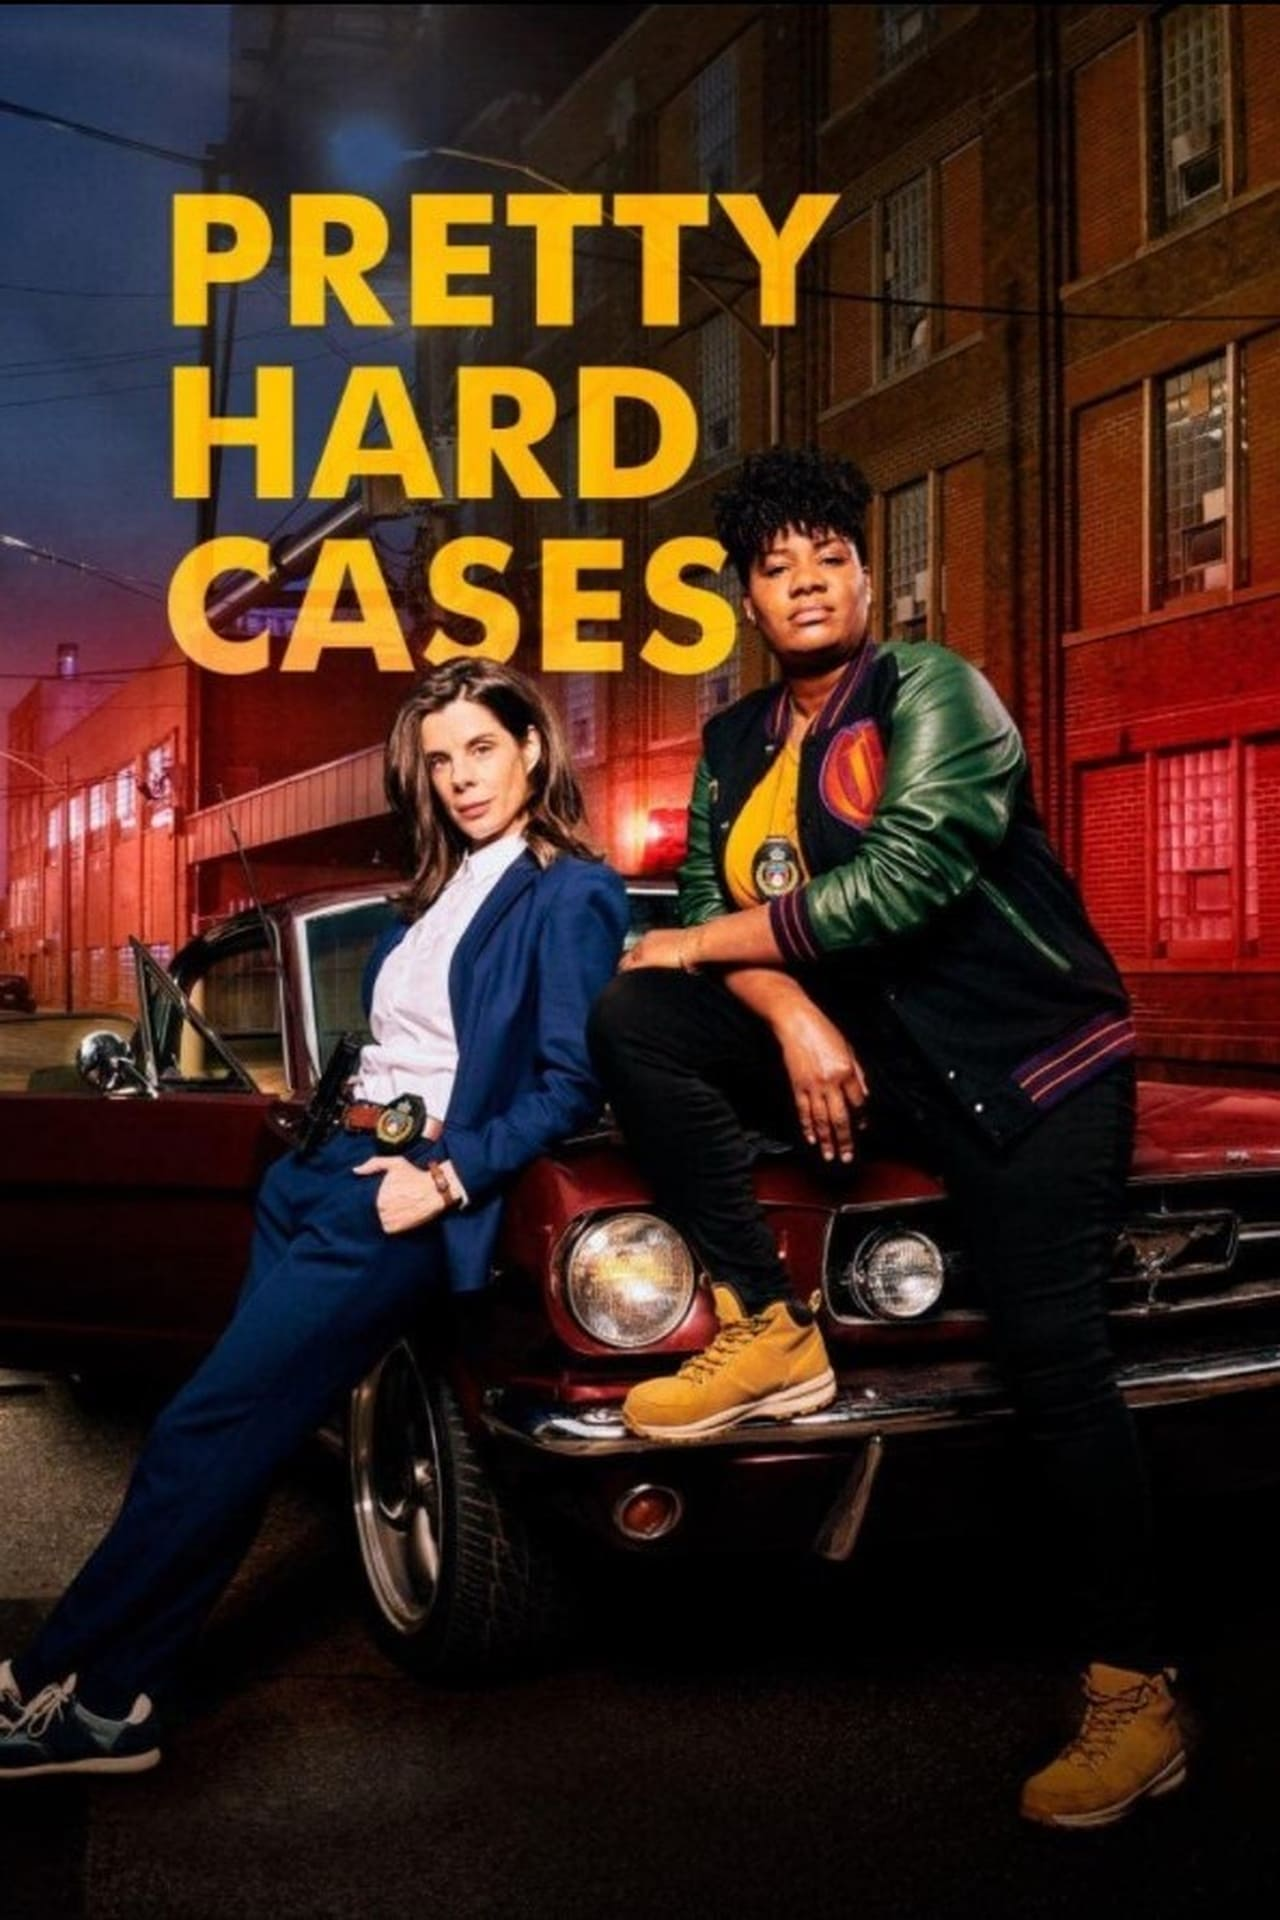 Pretty Hard Cases (season 1)